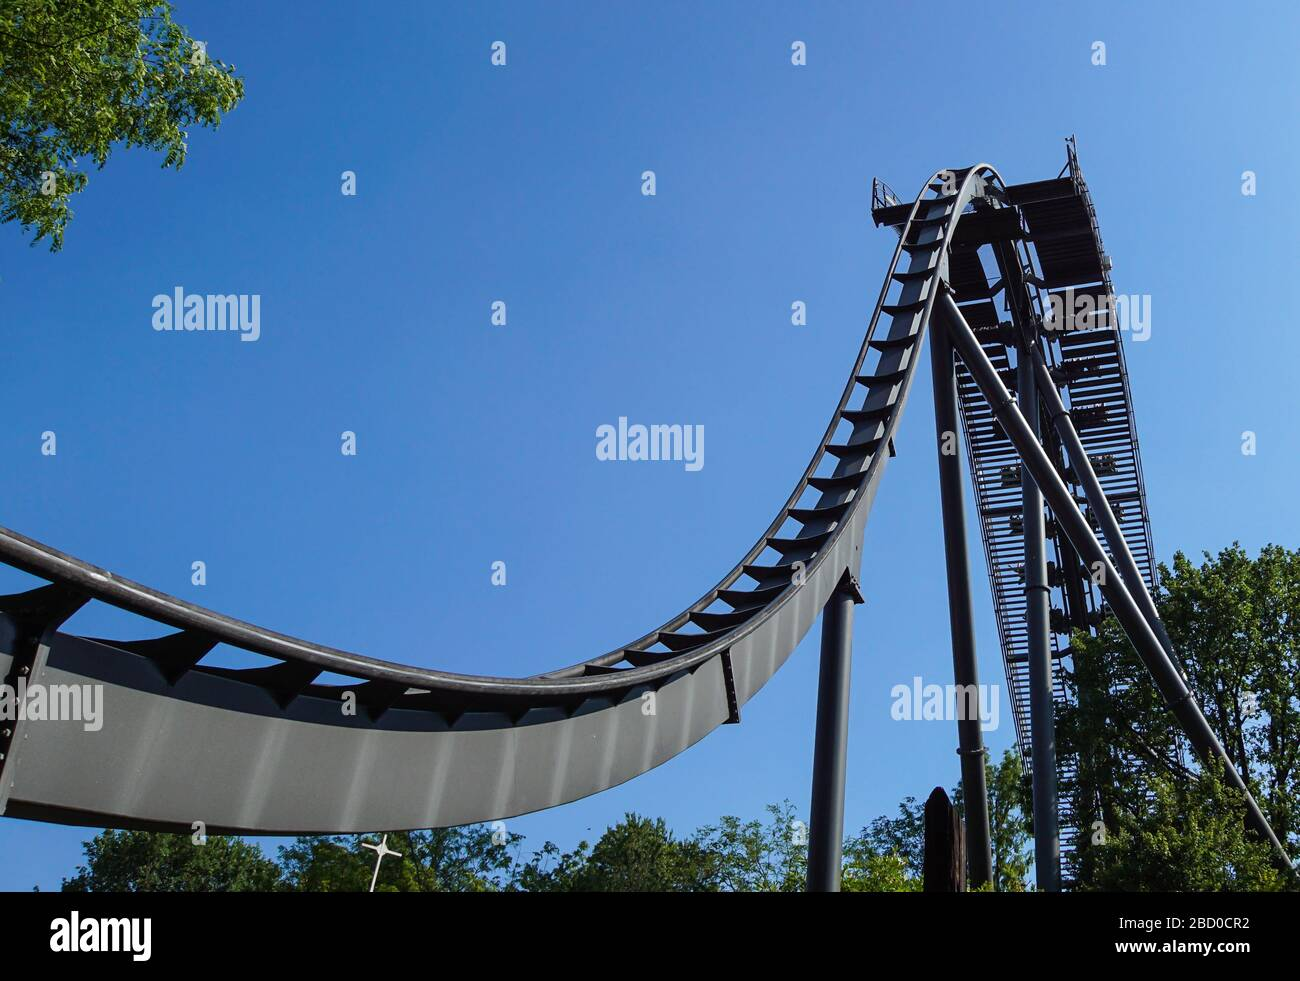 Rollercoaster track against a brilliant blue sky . Stock Photo